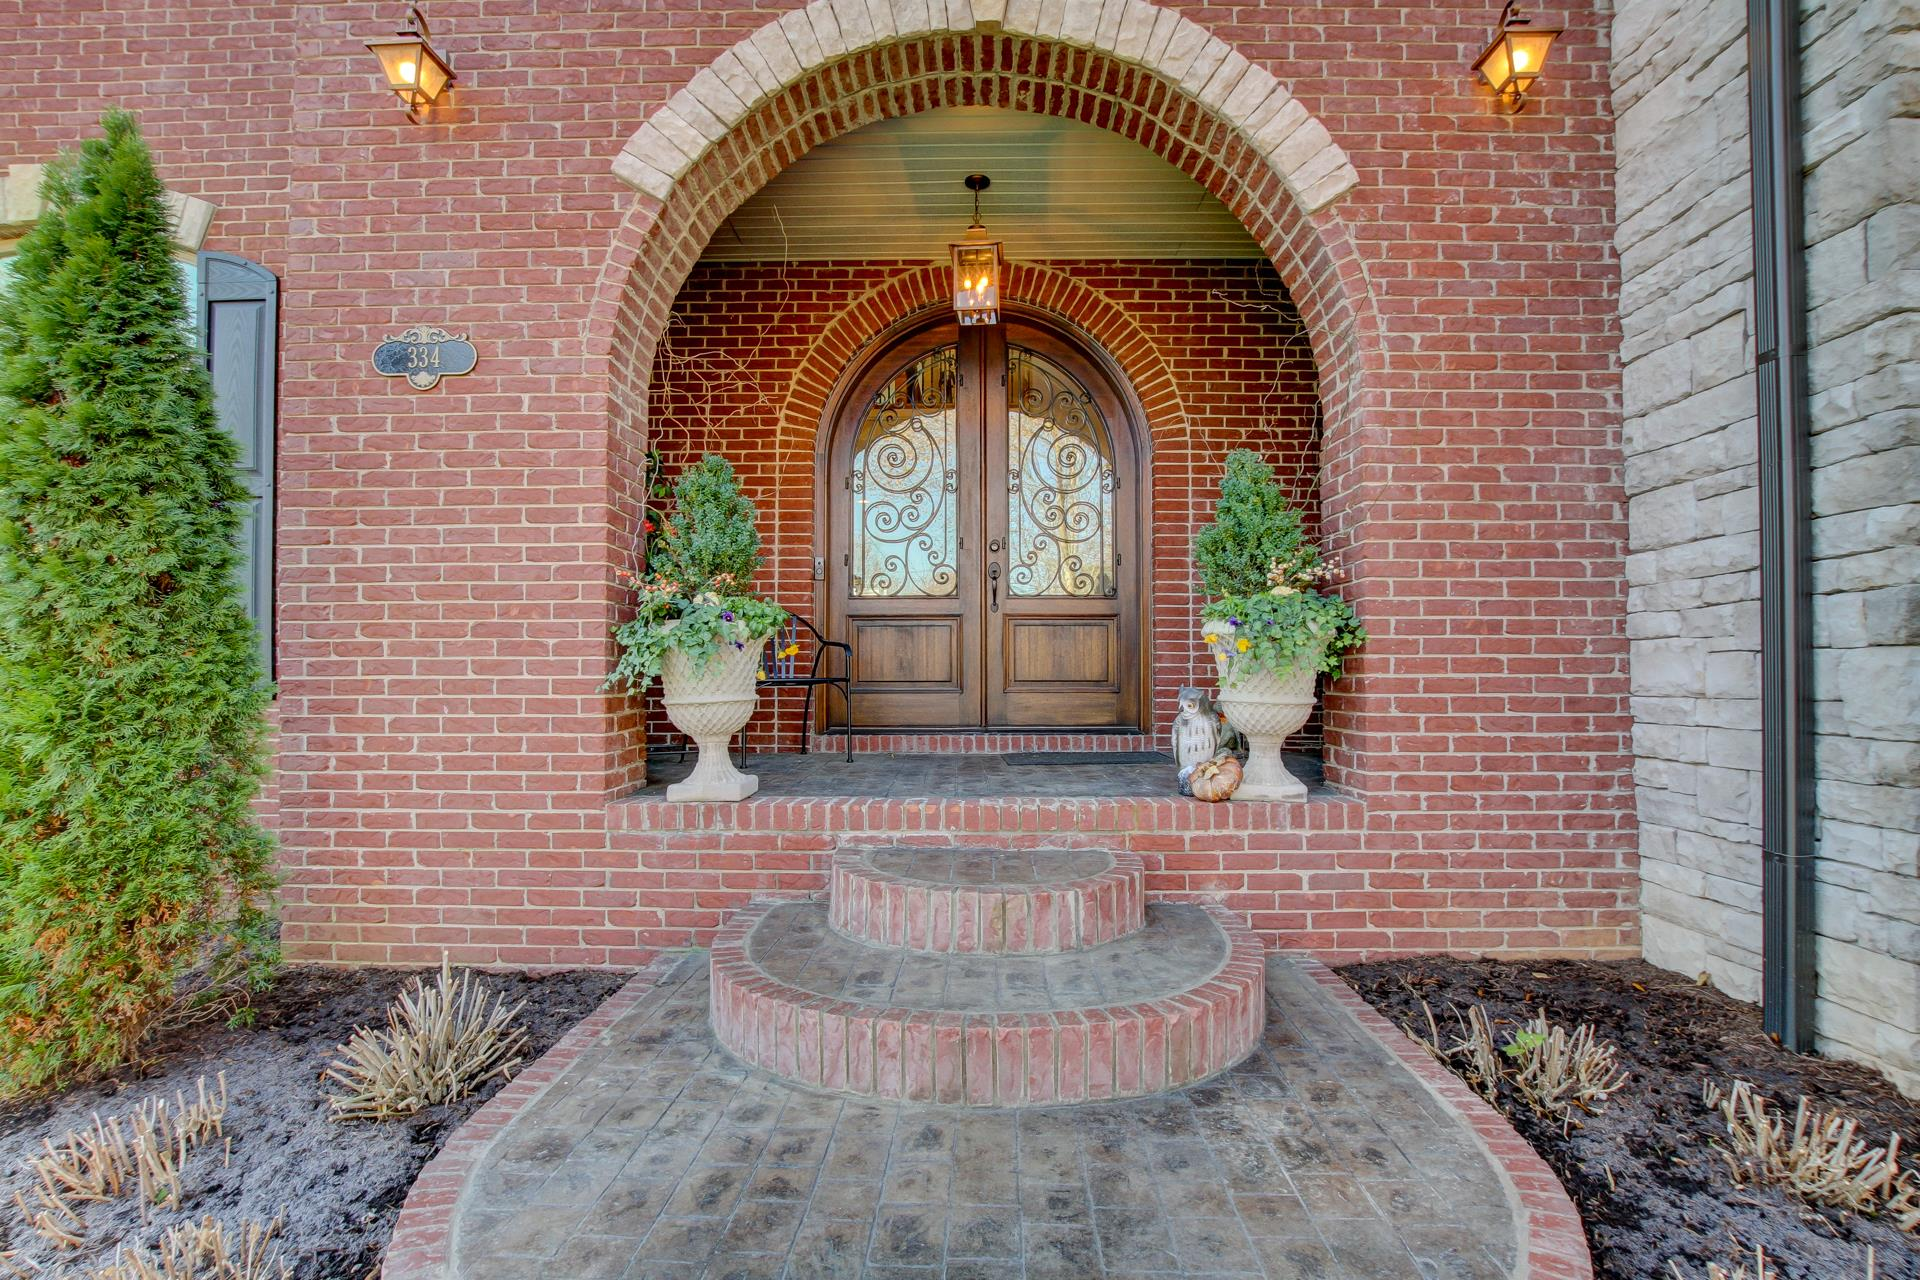 334 Peartree Dr, Clarksville, TN 37043 - Clarksville, TN real estate listing